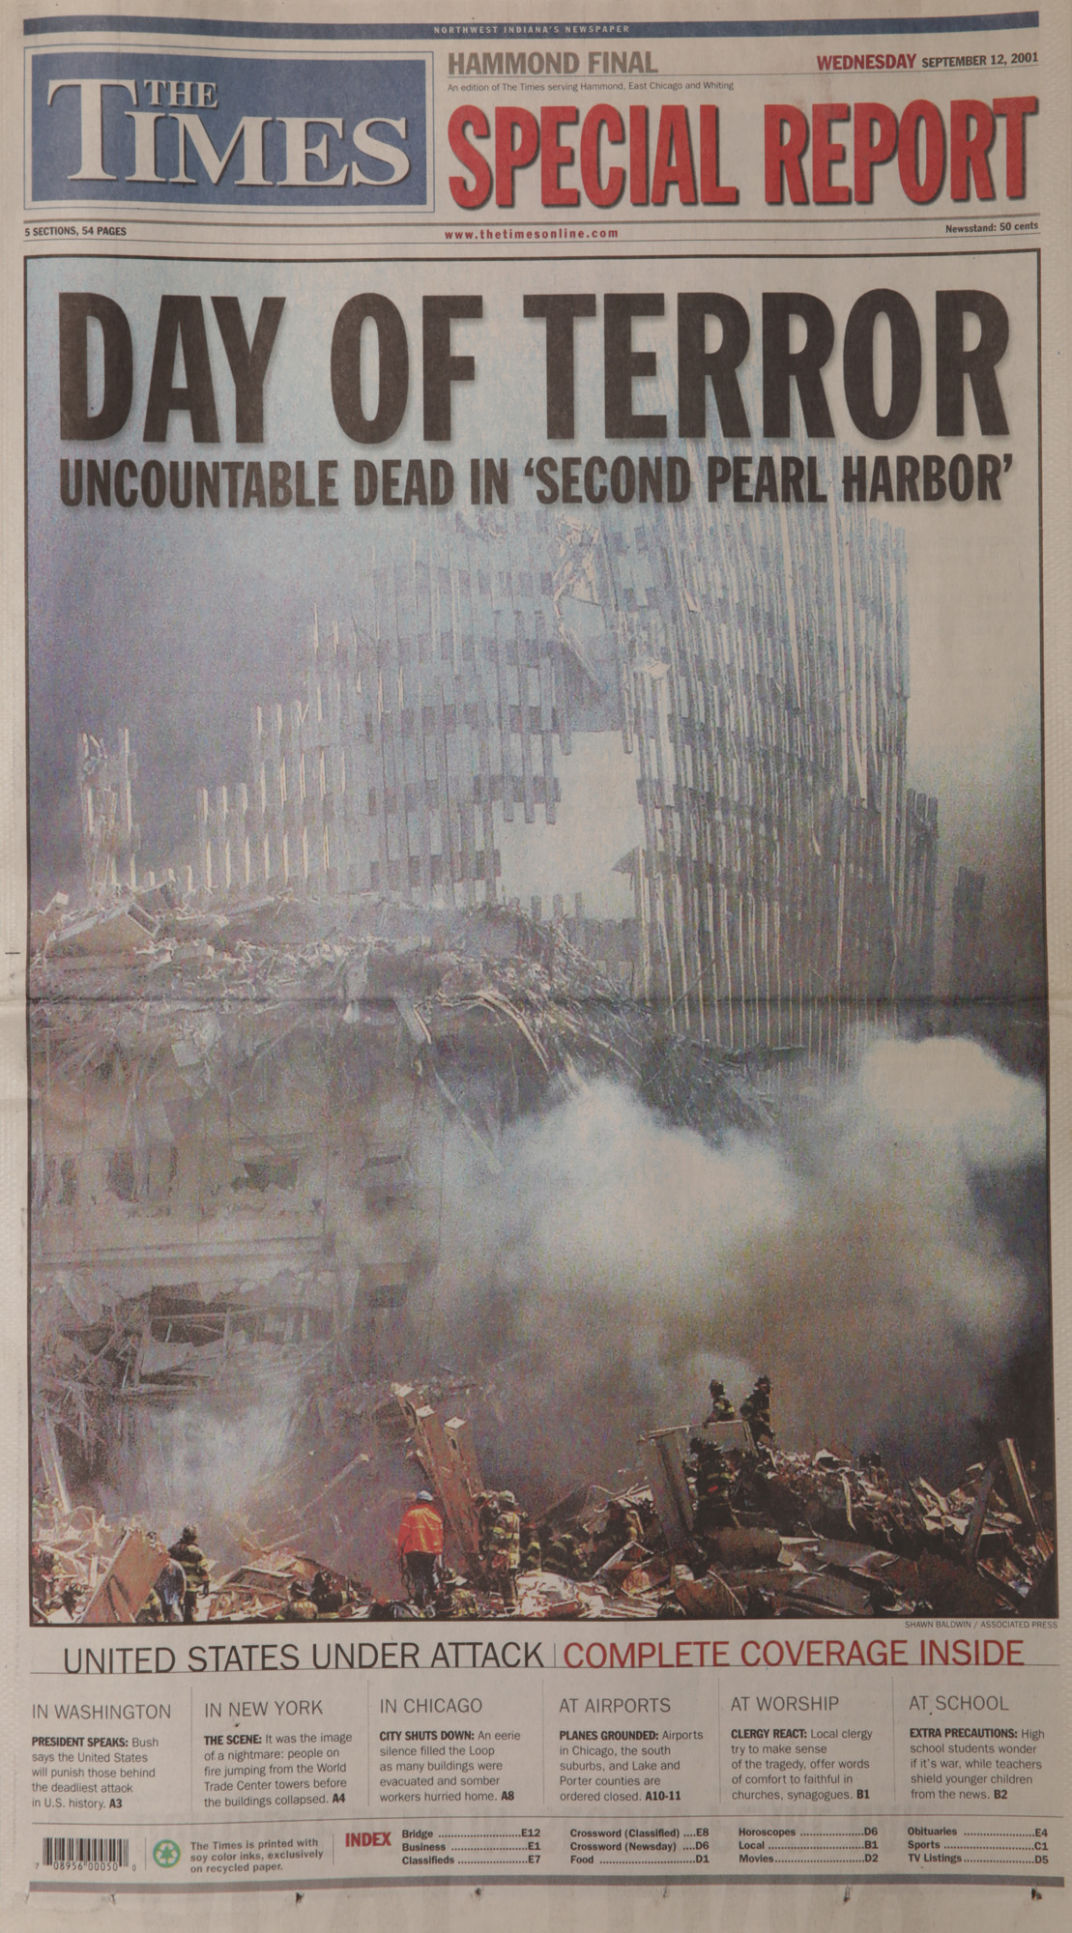 Sept. 12, 2001, front page